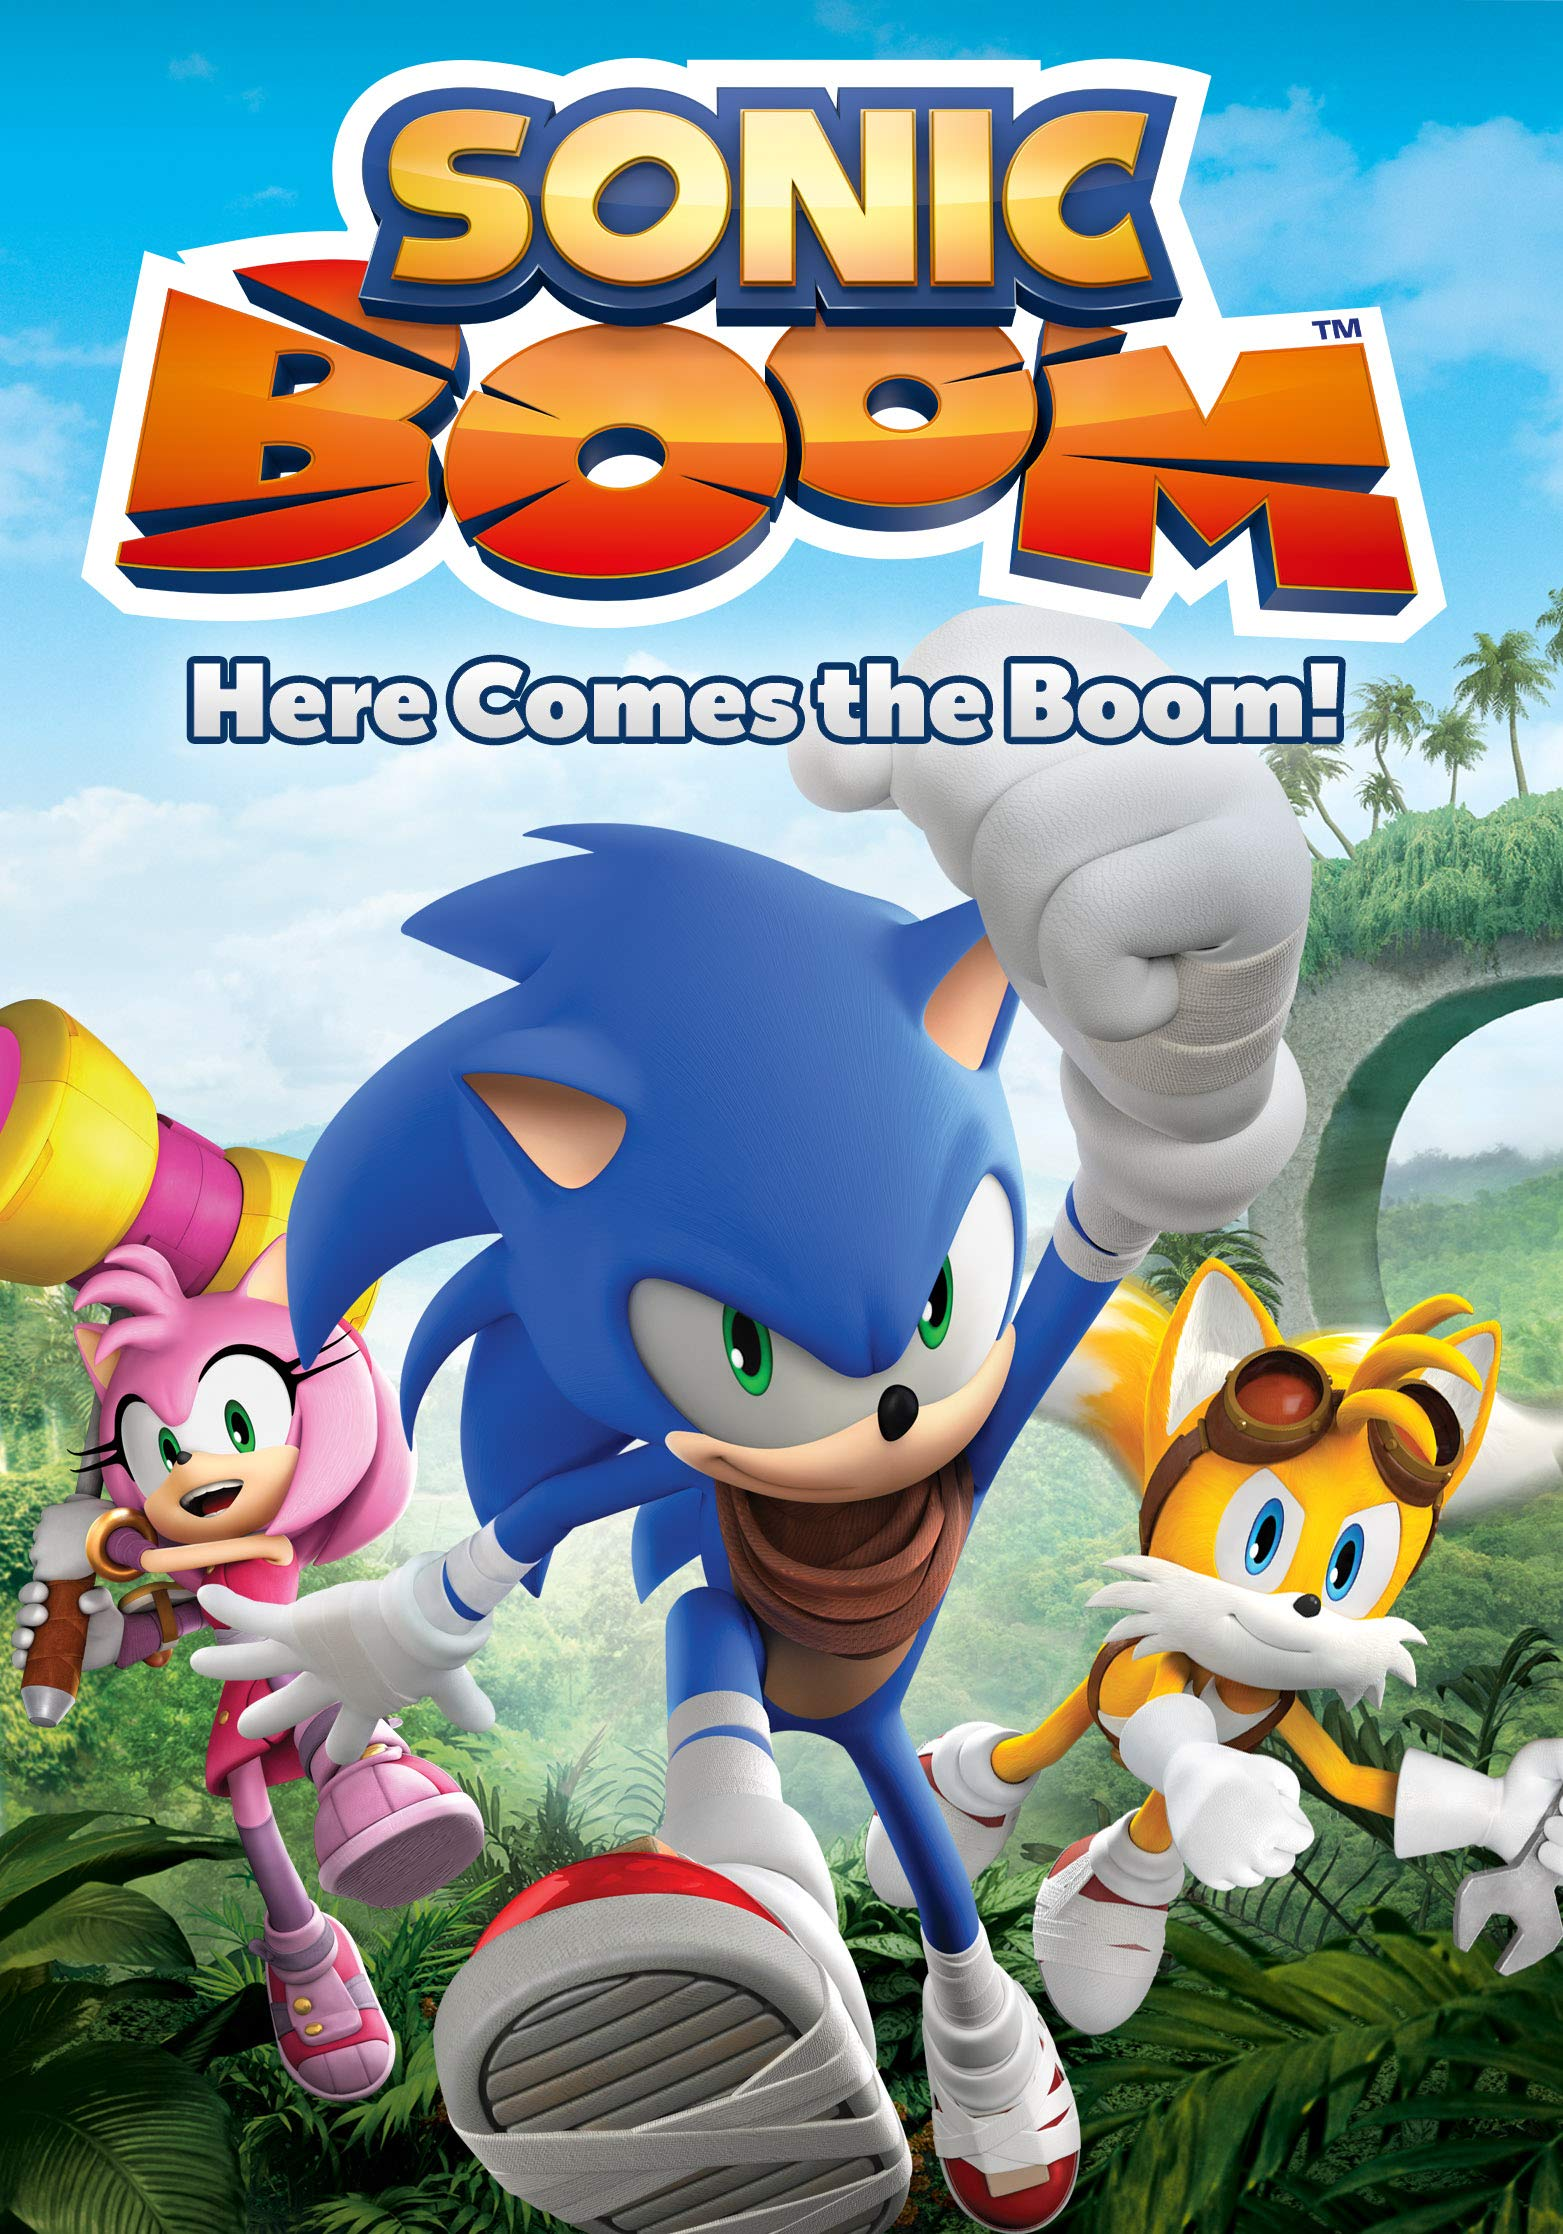 Sonic Boom: Here Comes the Boom! | Sonic News Network ...